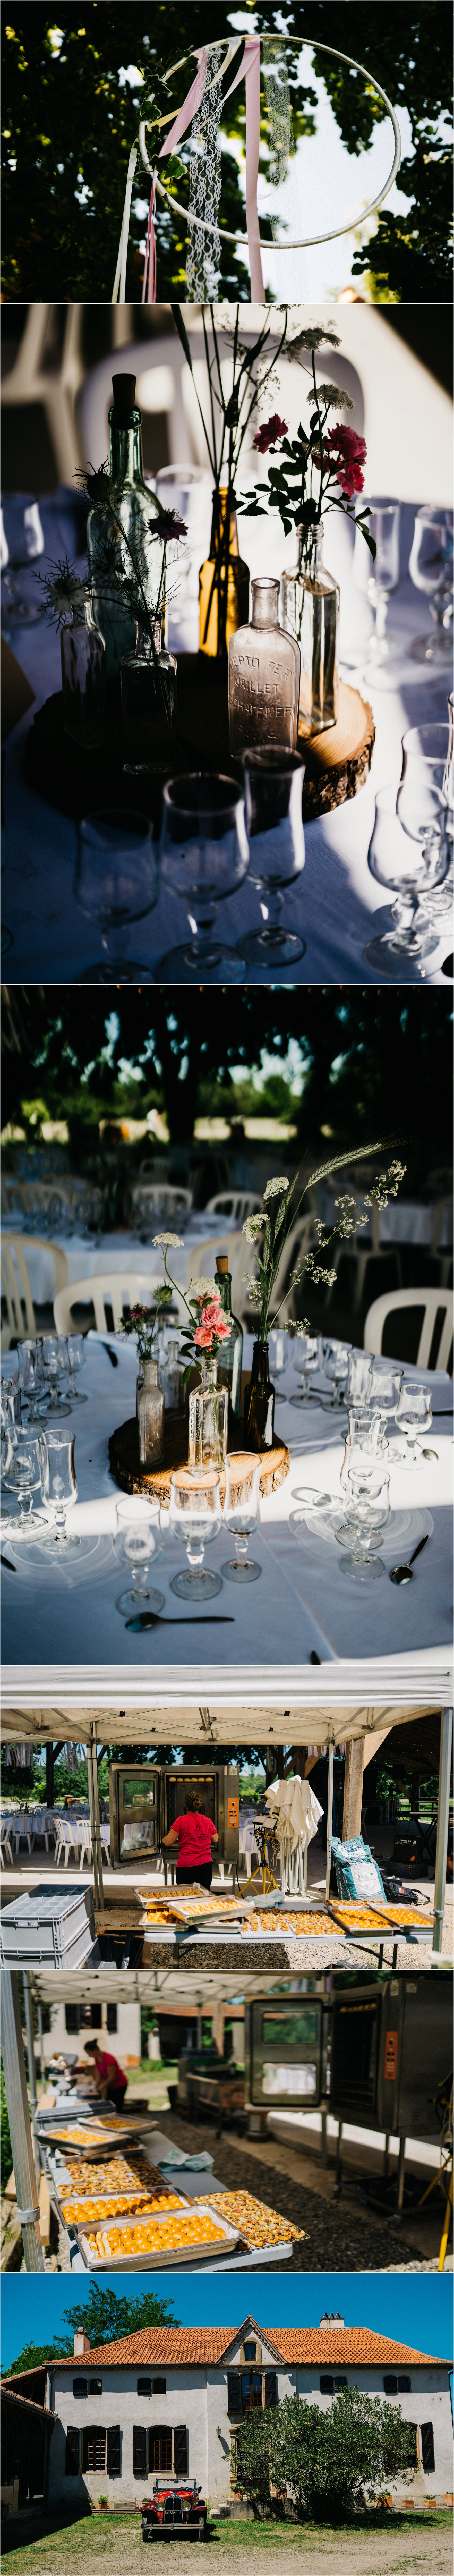 France destination garden wedding photographer_0080.jpg